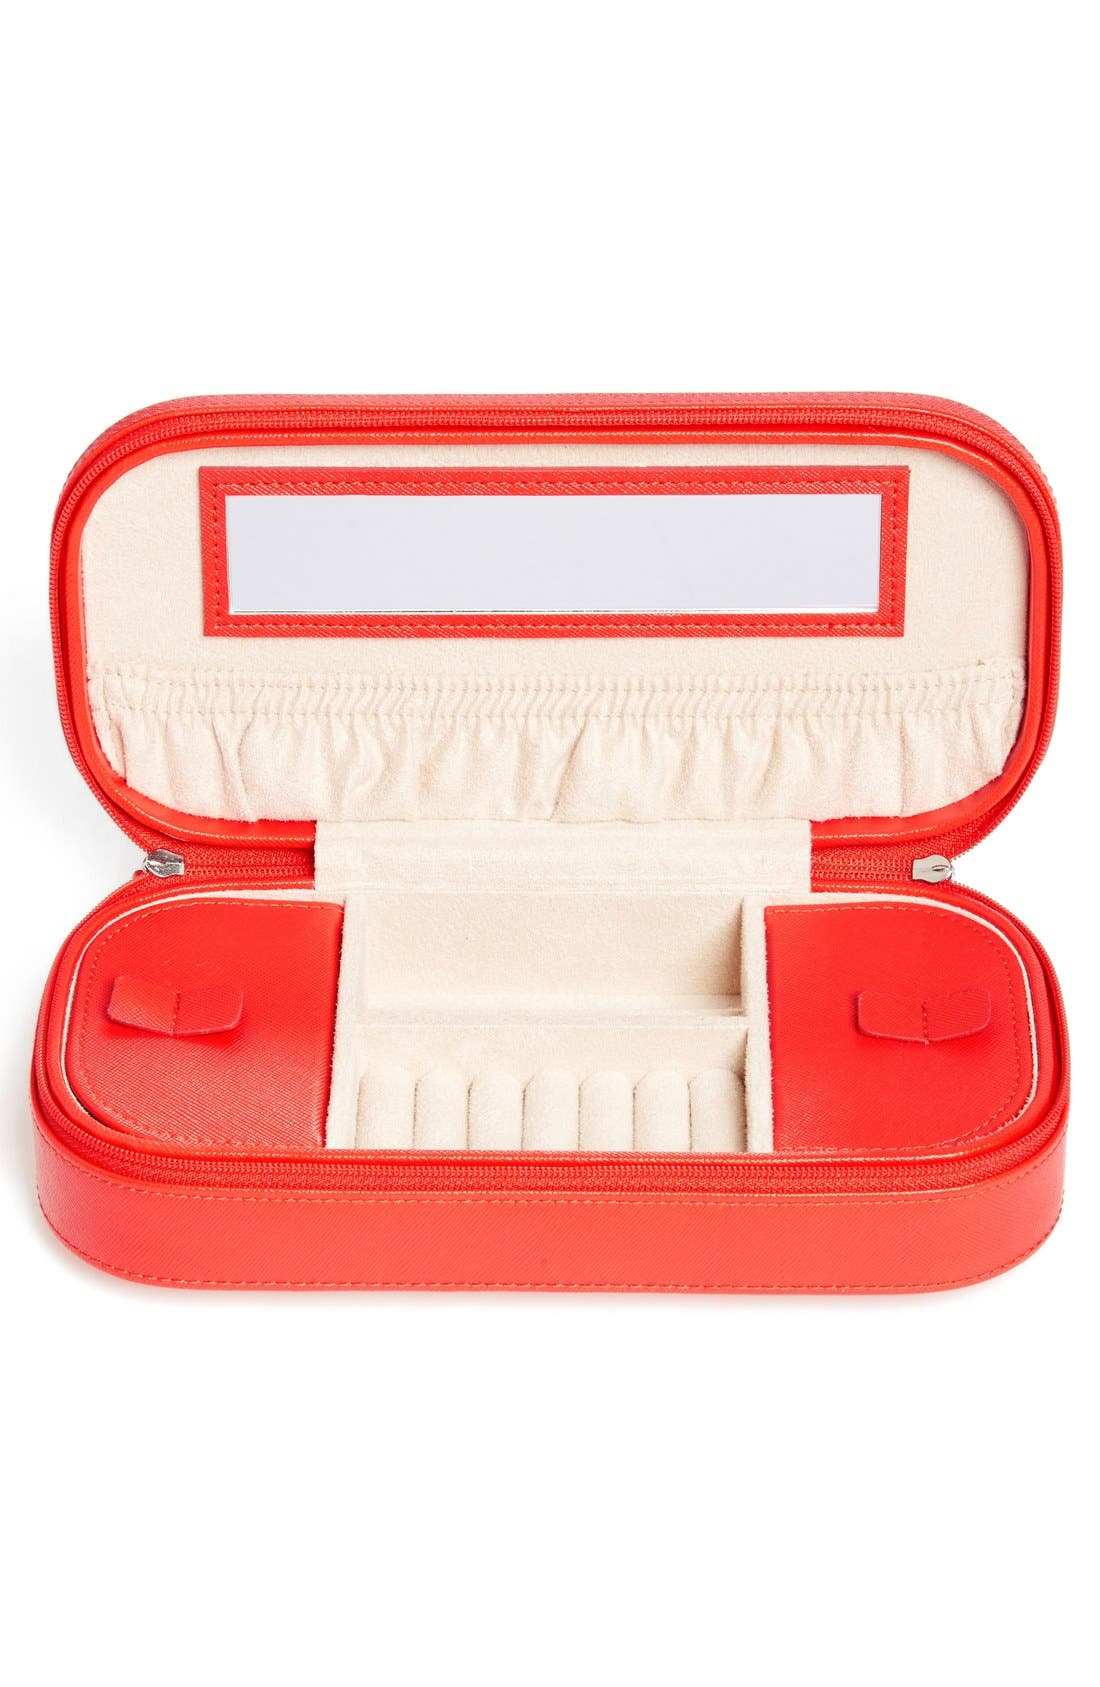 Alternate Image 2  - Nordstrom Travel Jewelry Case